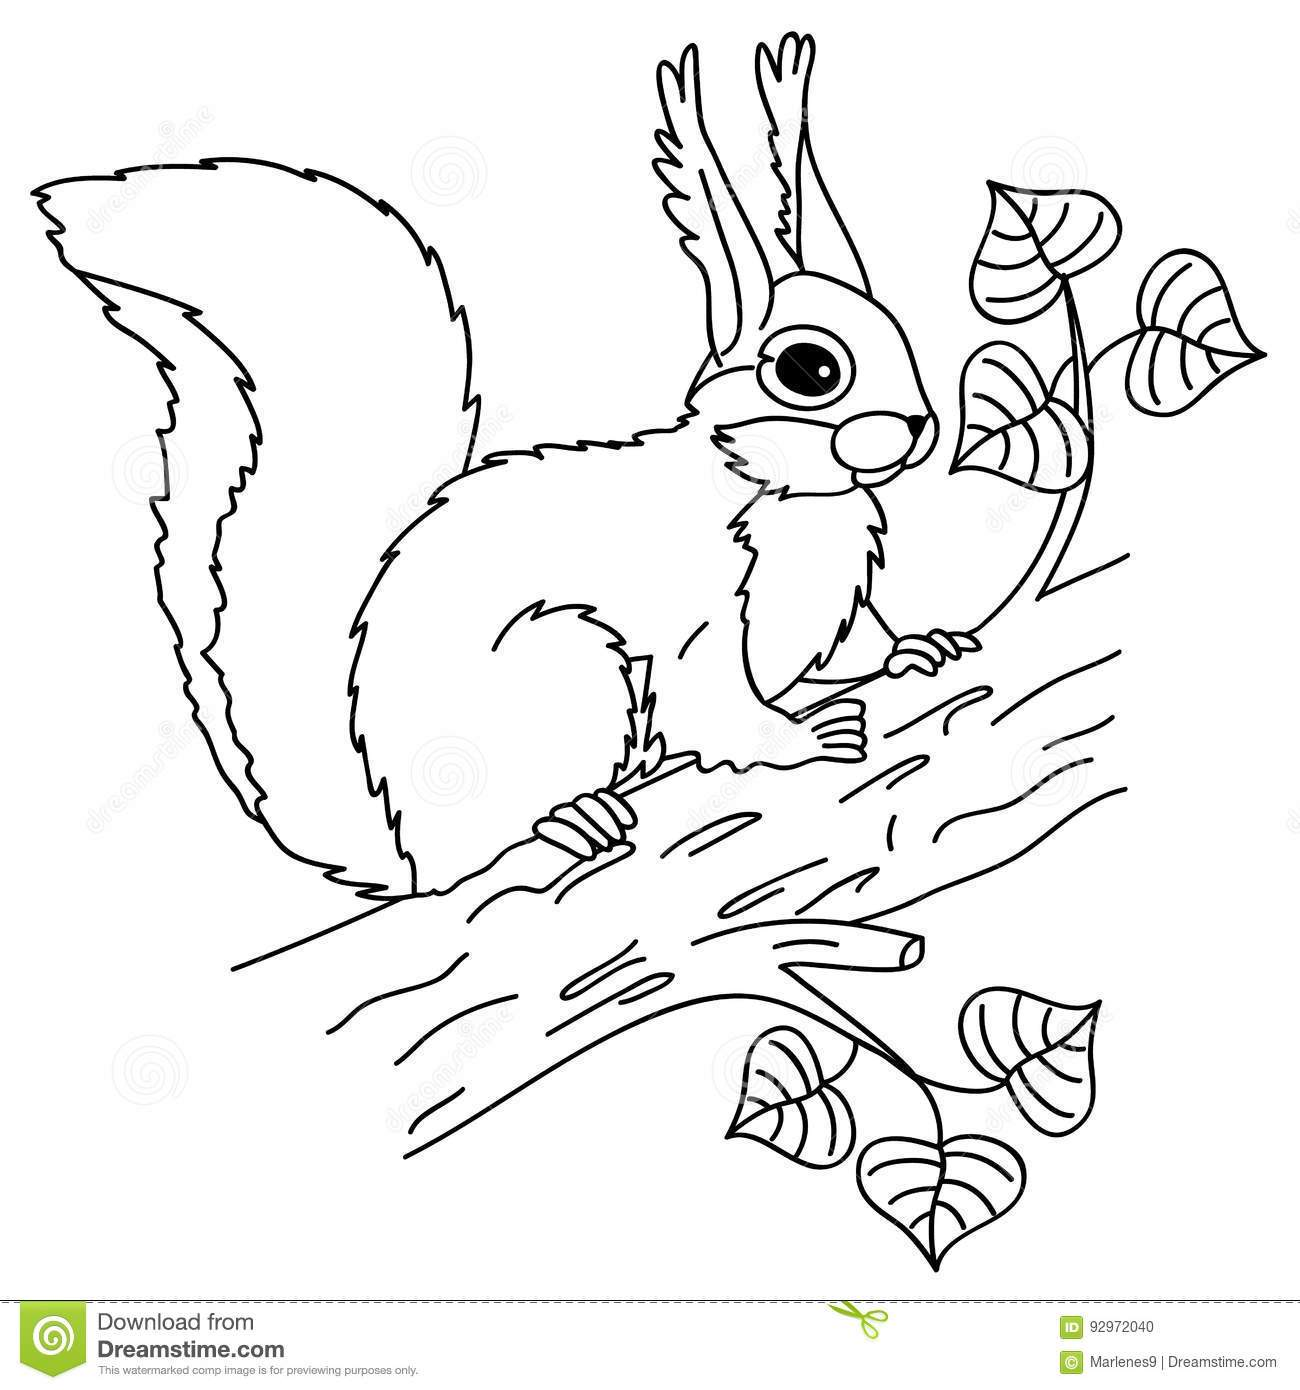 Black and white squirrel clipart 8 » Clipart Portal.